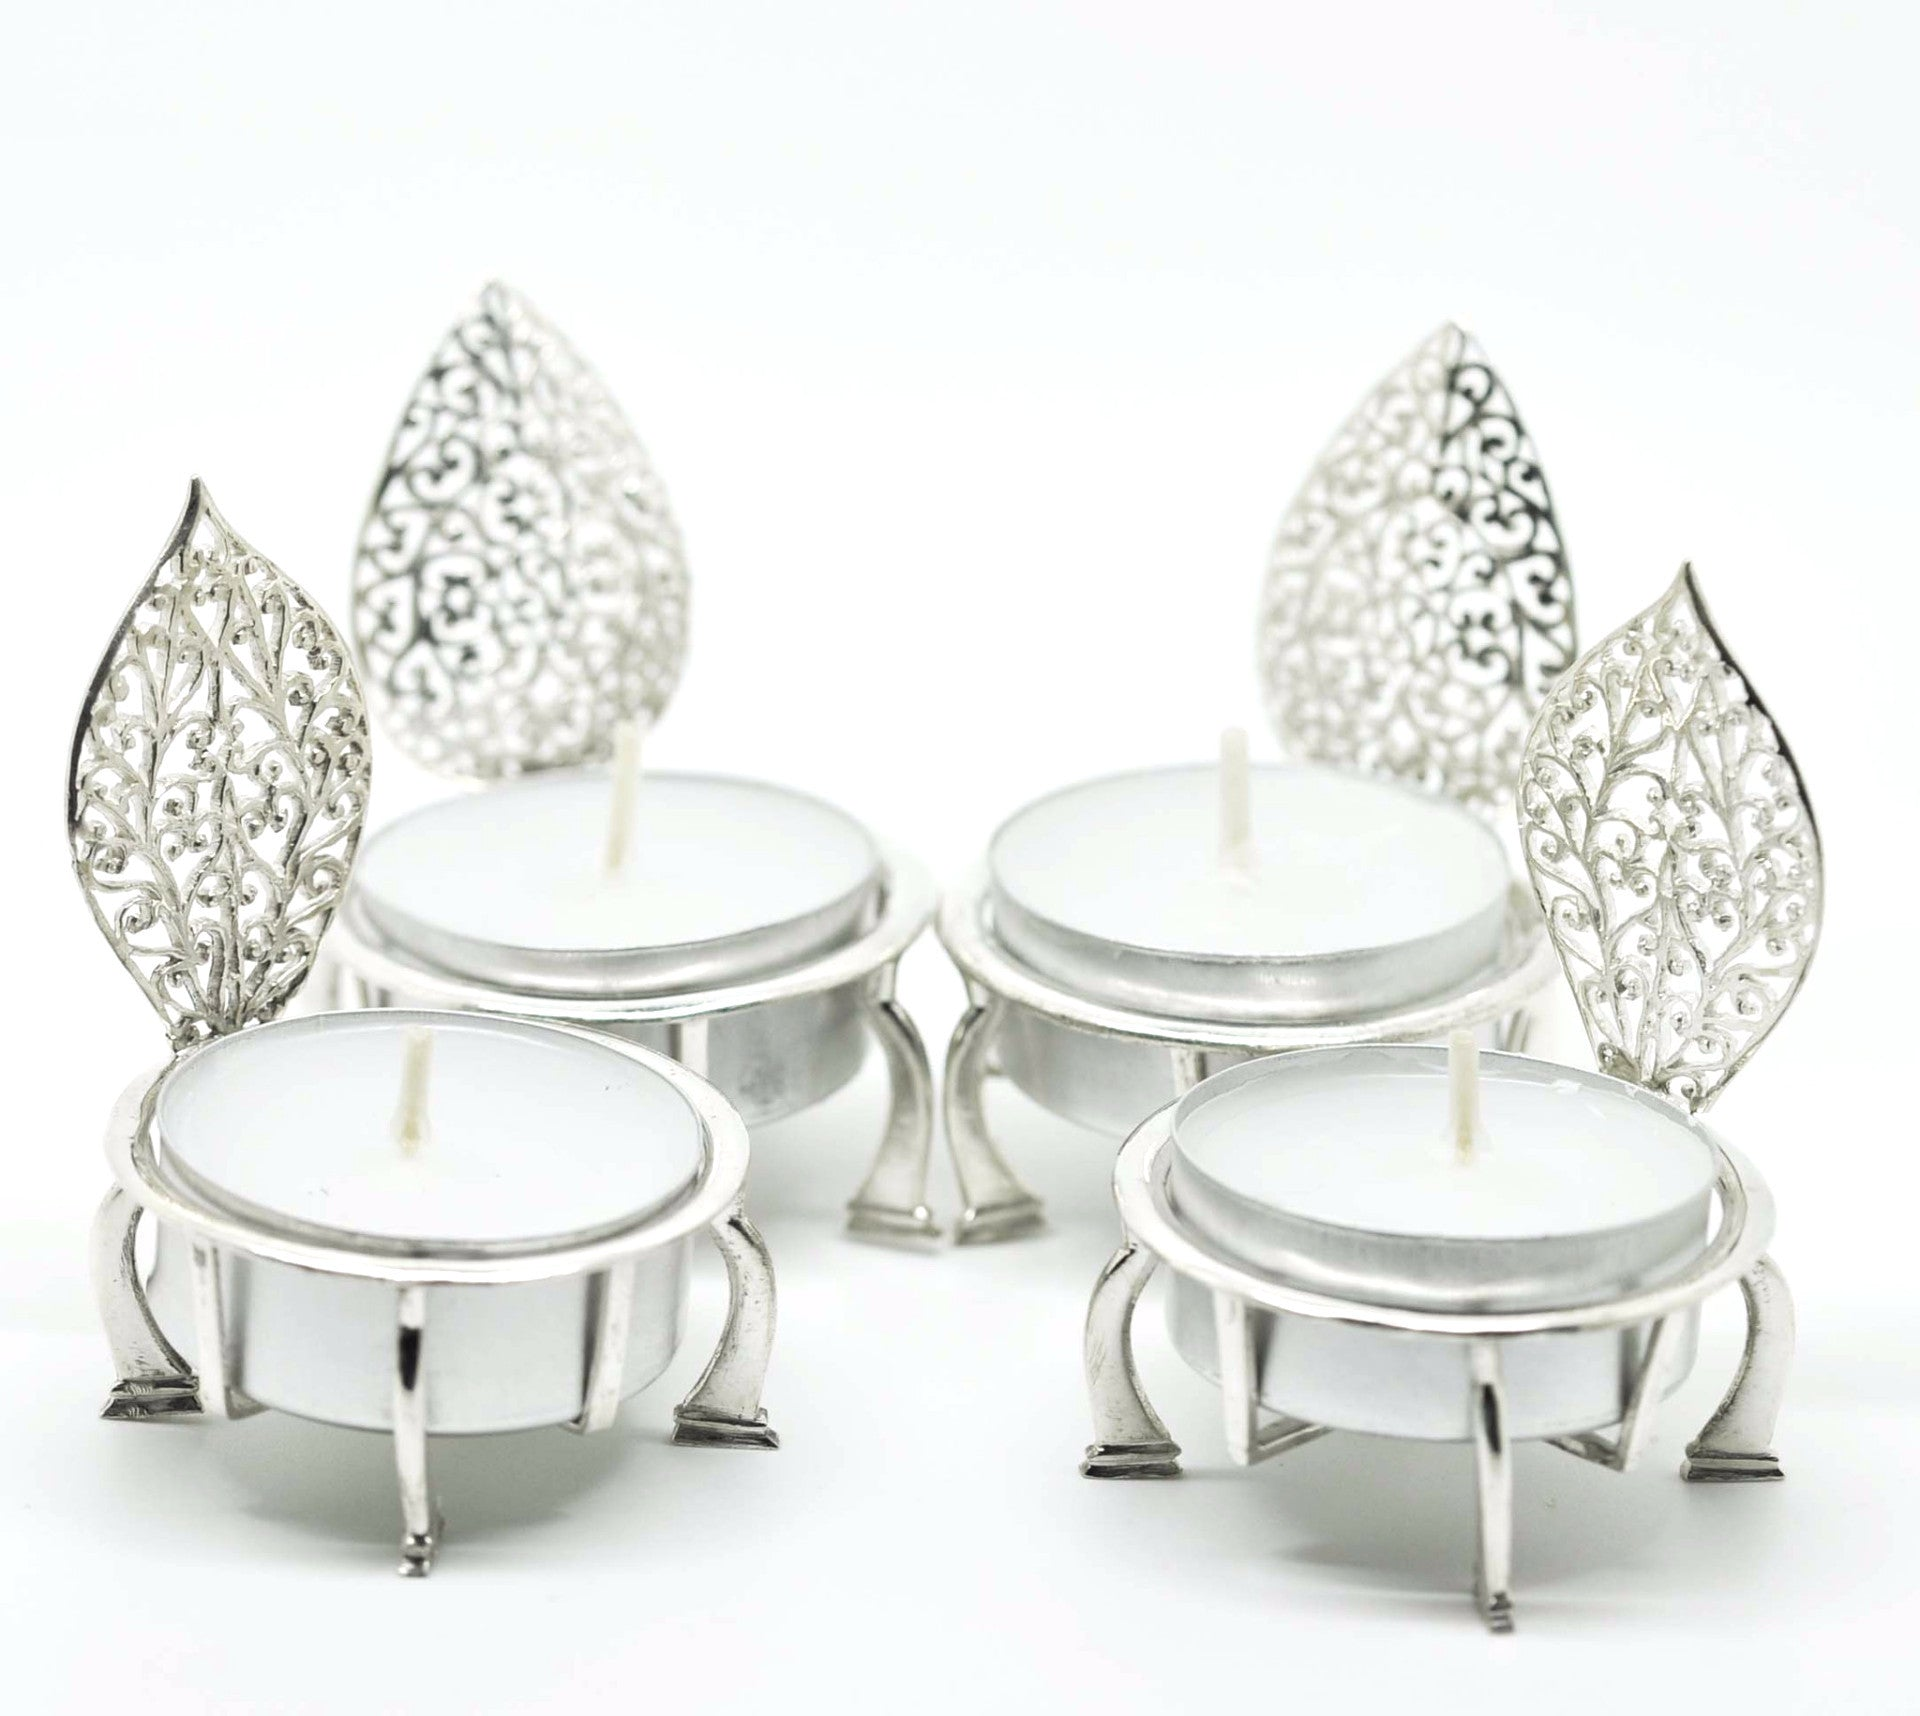 SOLD OUT - Sterling Silver Filigree Candle Holder 2